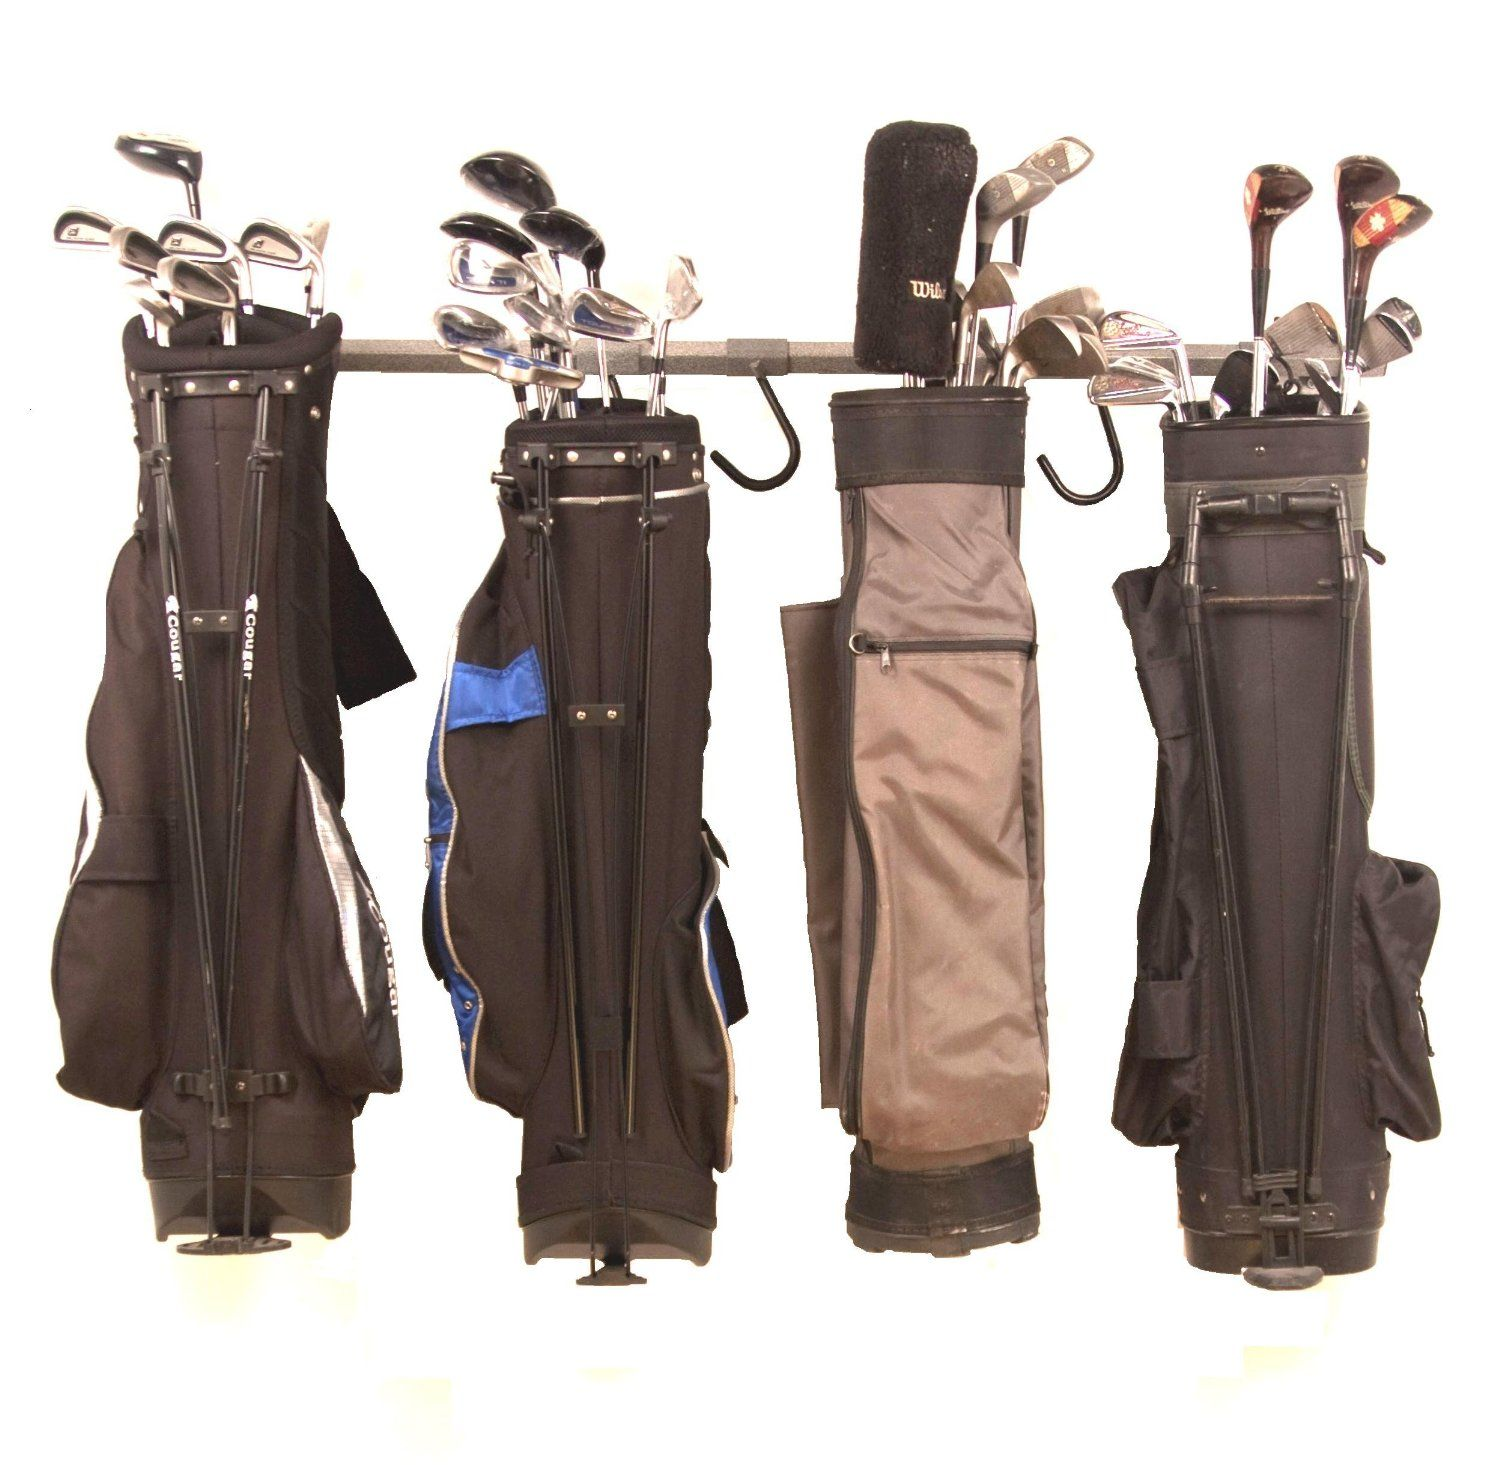 Attrayant The Simple But Effective Design Of These Monkey Bars Golf Bag Rack Allows  You To Store Up To 6 Golf Bags In One Conveniently Small Space!